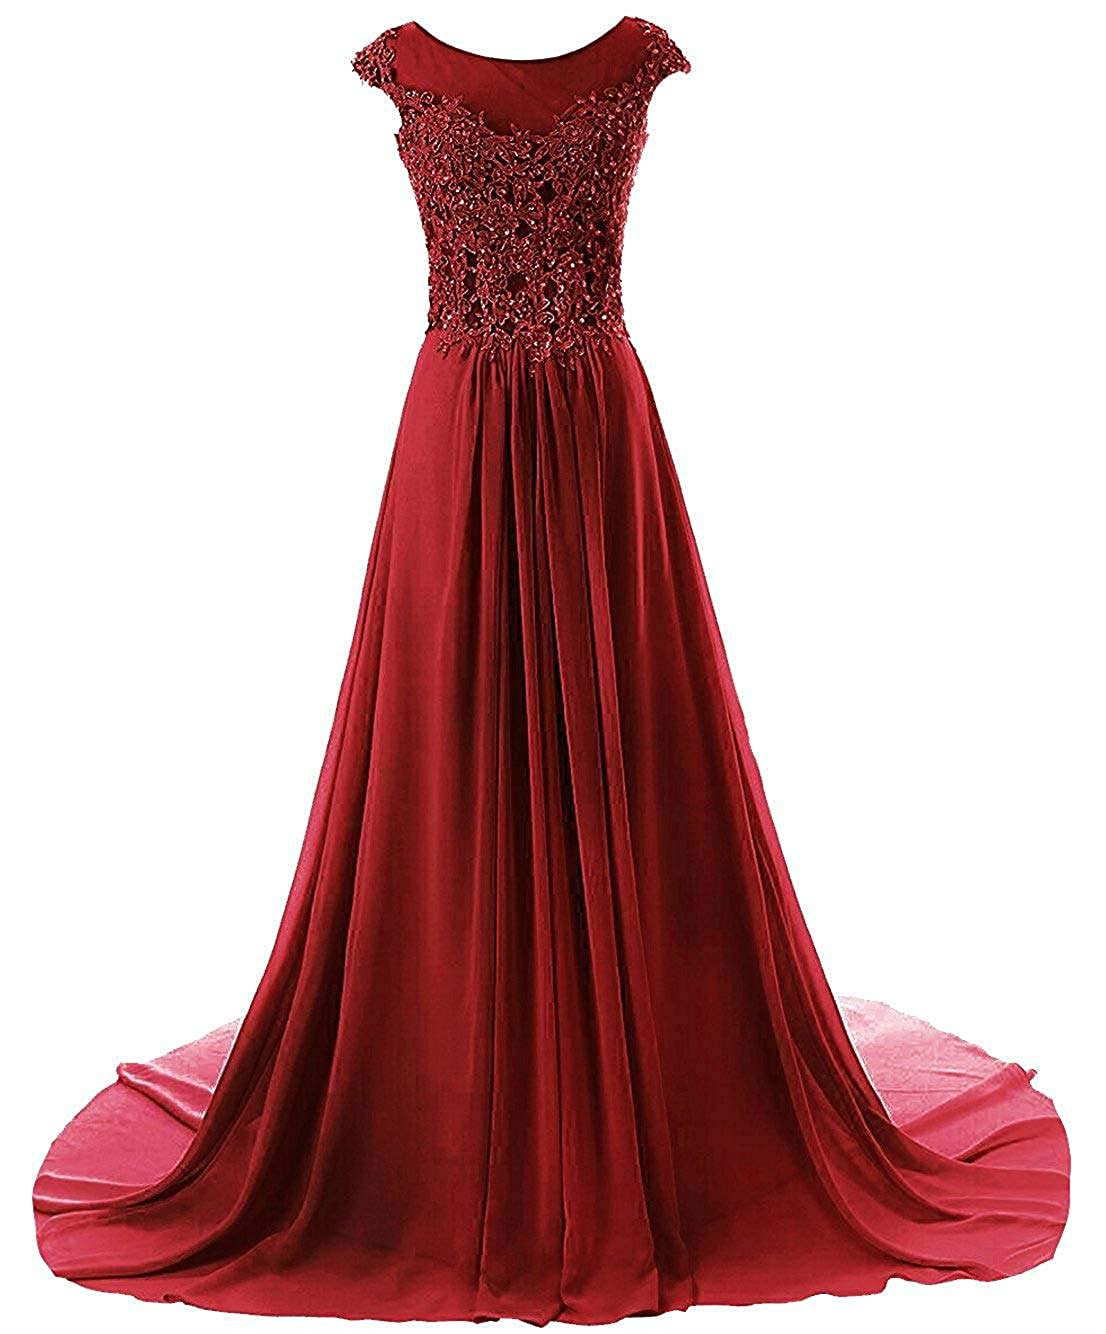 Burgundy Wanshaqin Women's Aline Lace Appliques Evening Party Cocktail Dresses Bridesmaid Gowns Prom Formal Dresses for Events Party